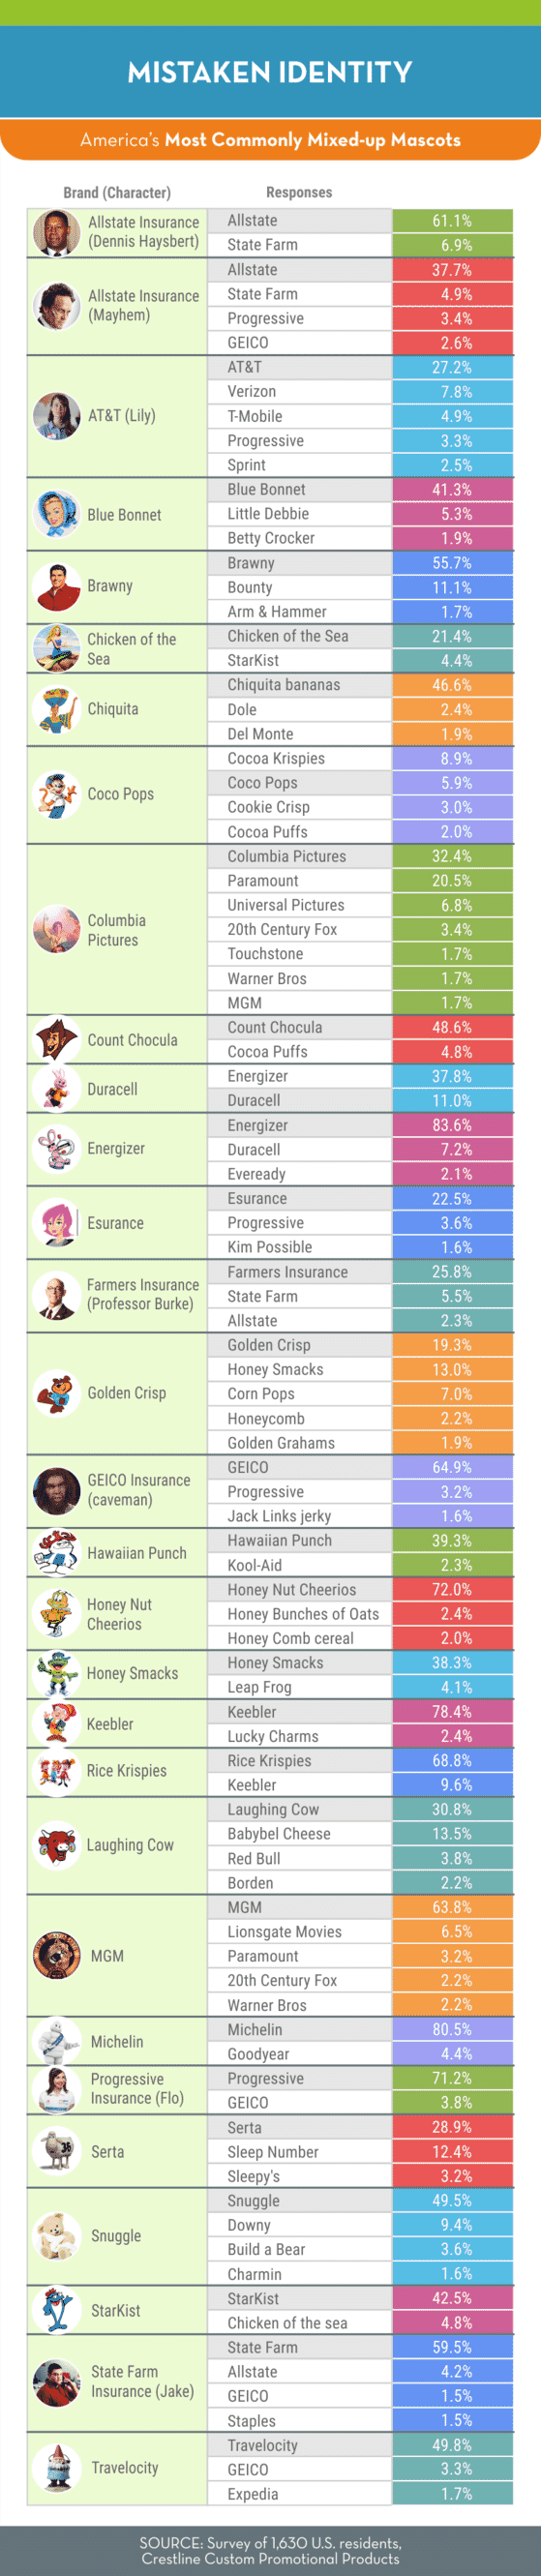 Most Commonly Mixed-up Mascots